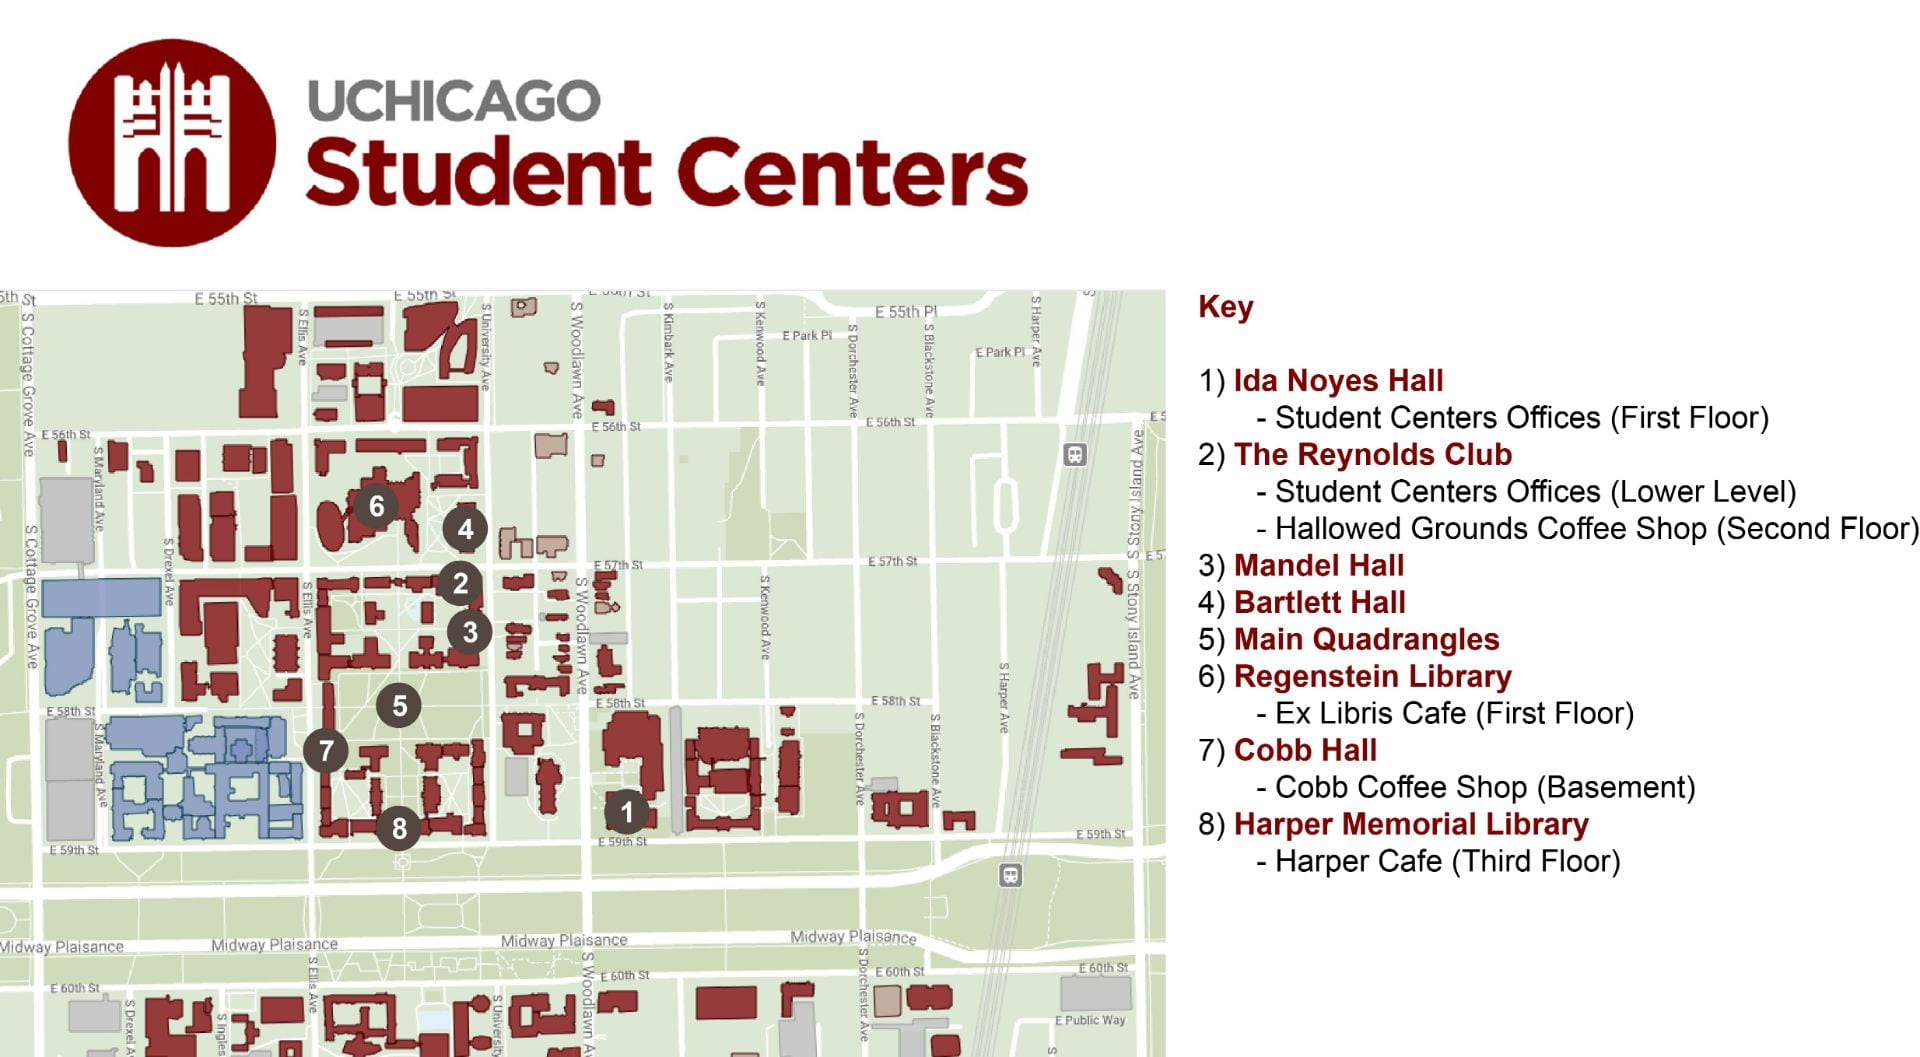 Student Centers Locations Map